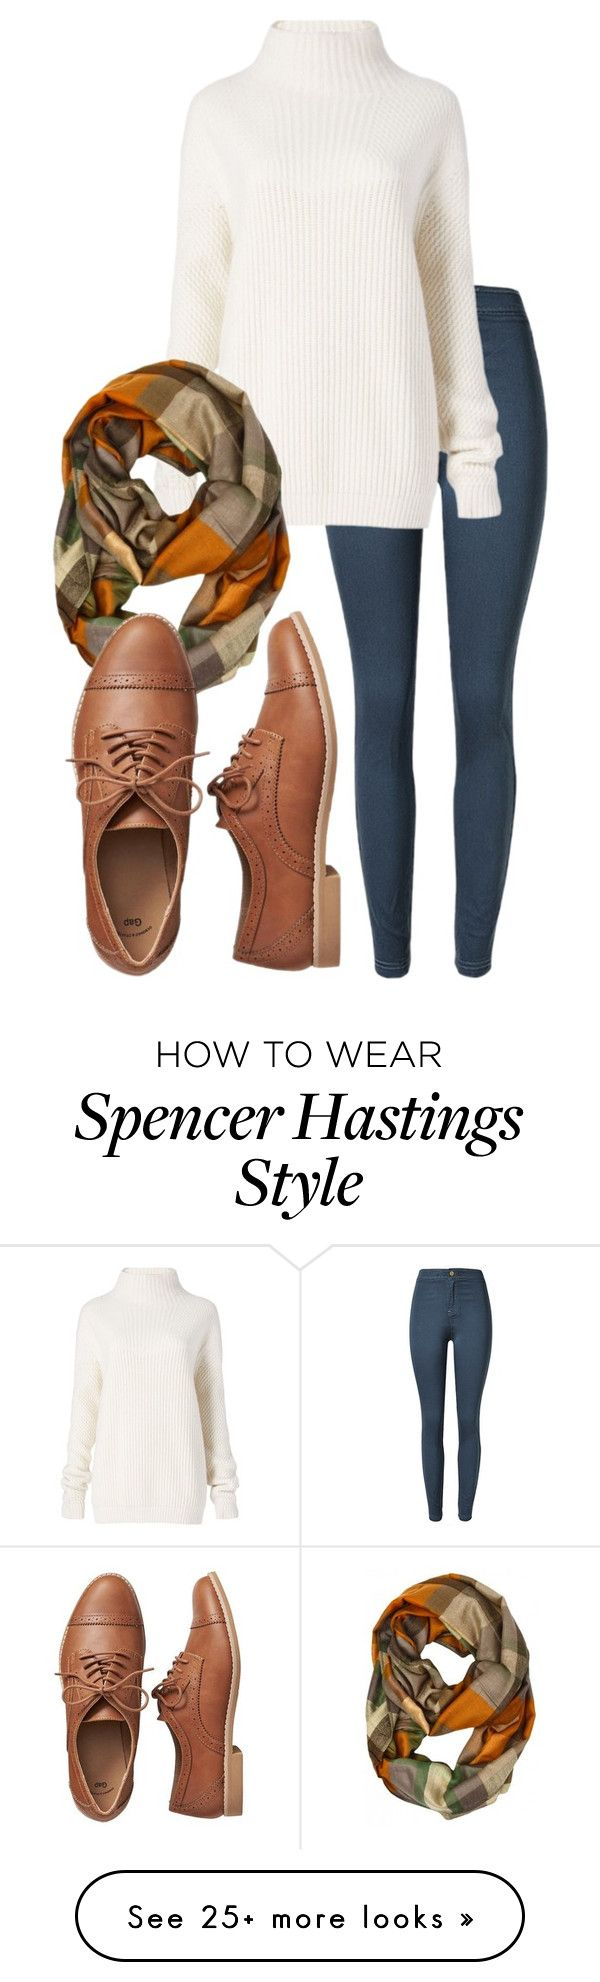 """""""Inspired by spencer hastings's style (pll) ✌️"""" by rachastyle on Polyvore featuring Diane Von Furstenberg and Gap"""